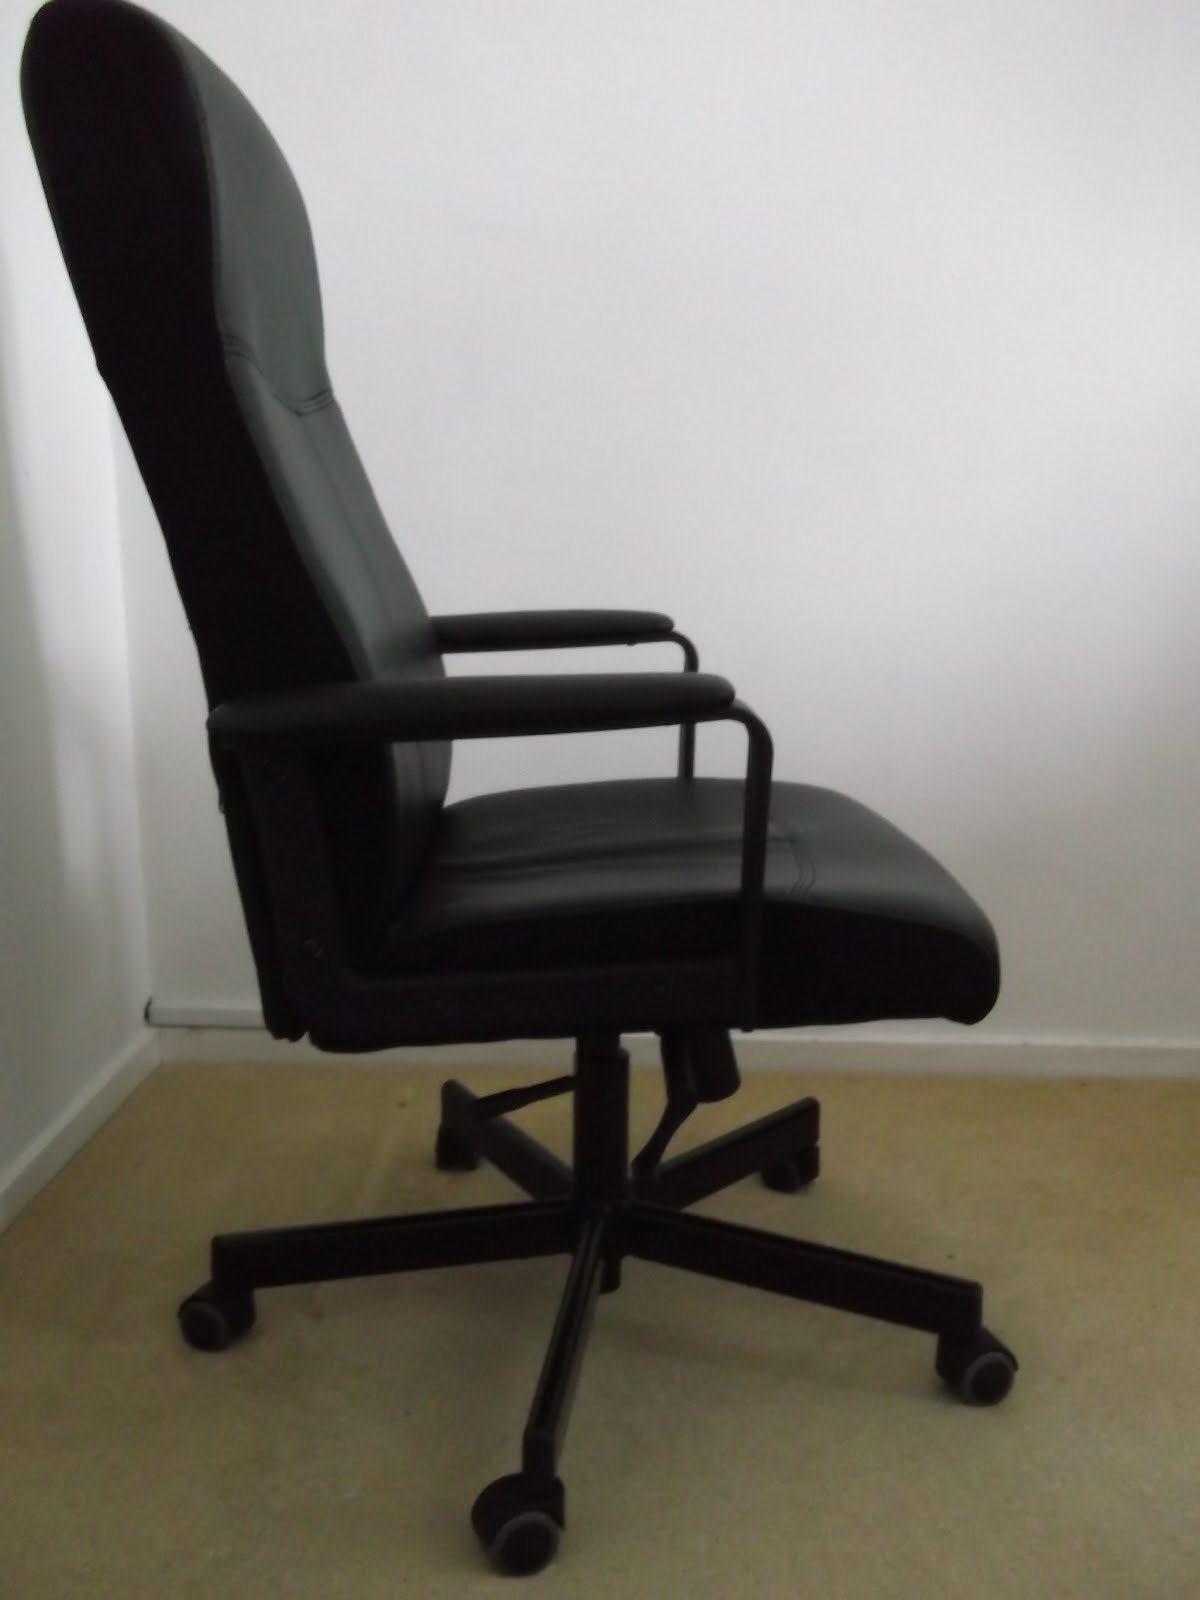 ikea swivel chair what is zero gravity consumer review office malkolm